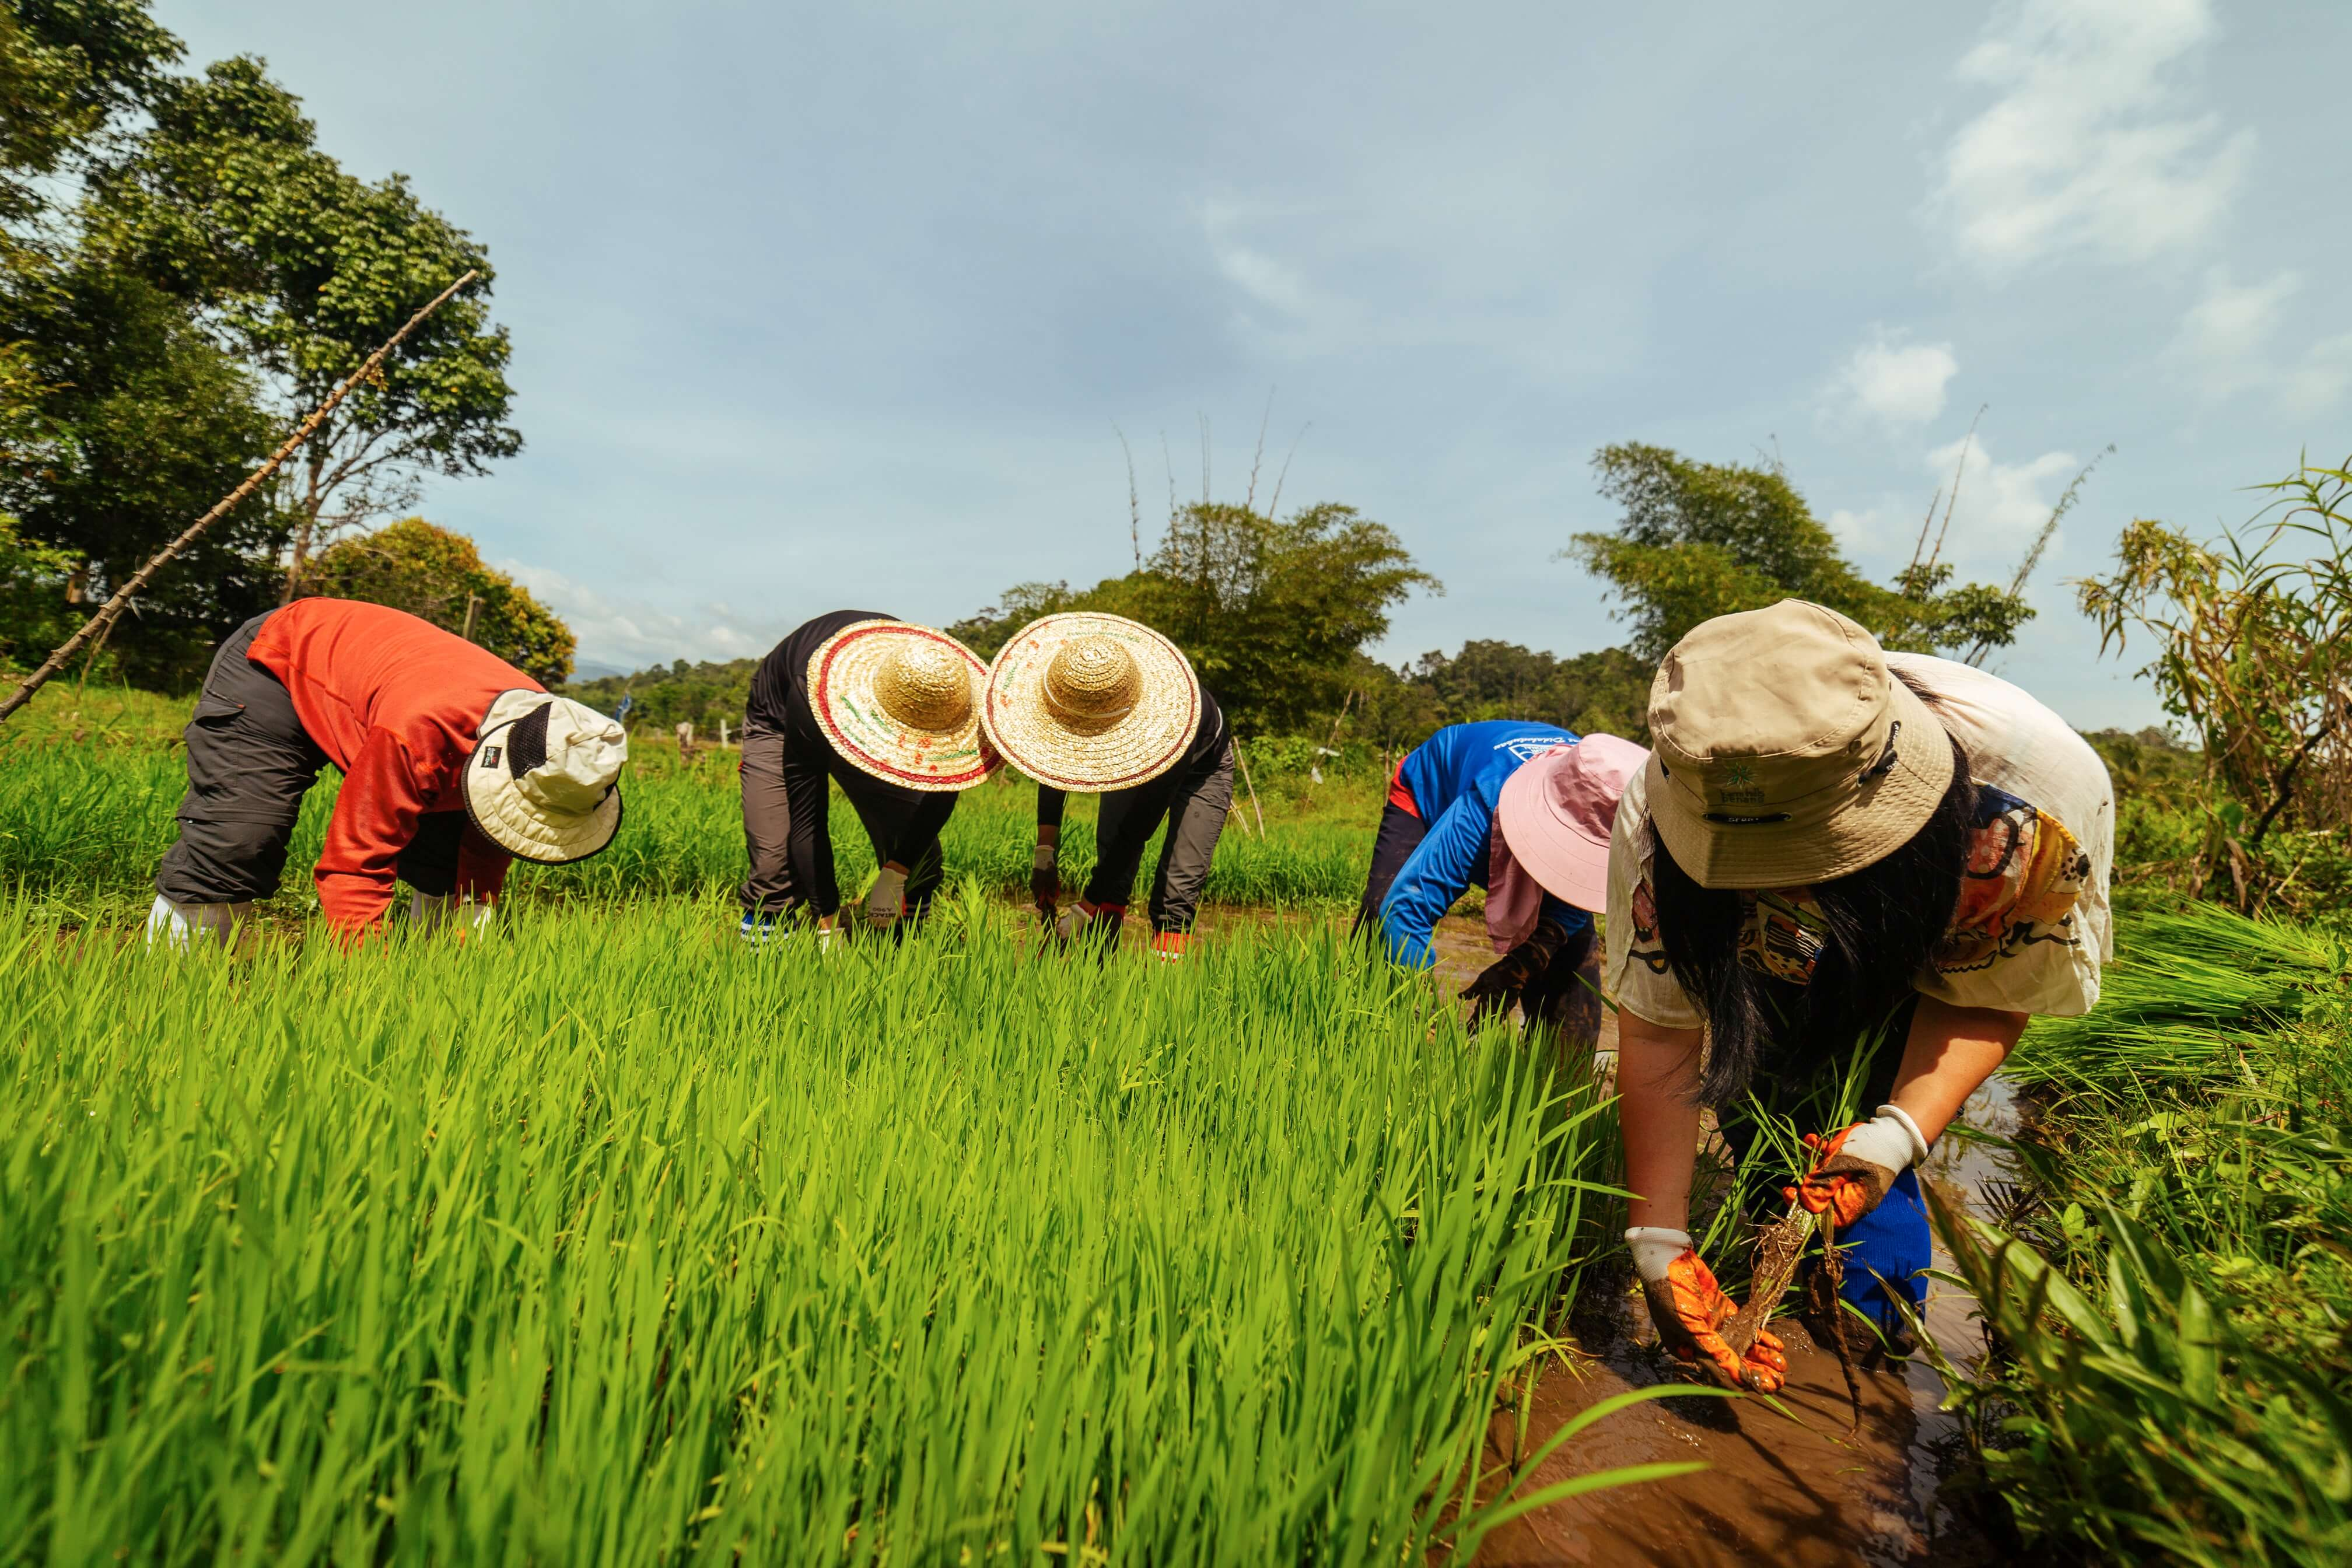 Travellers bent over as they make their way through a field planting rice seedlings, sheltered from the sun by wide-brimmed hats and long sleeves and trousers.